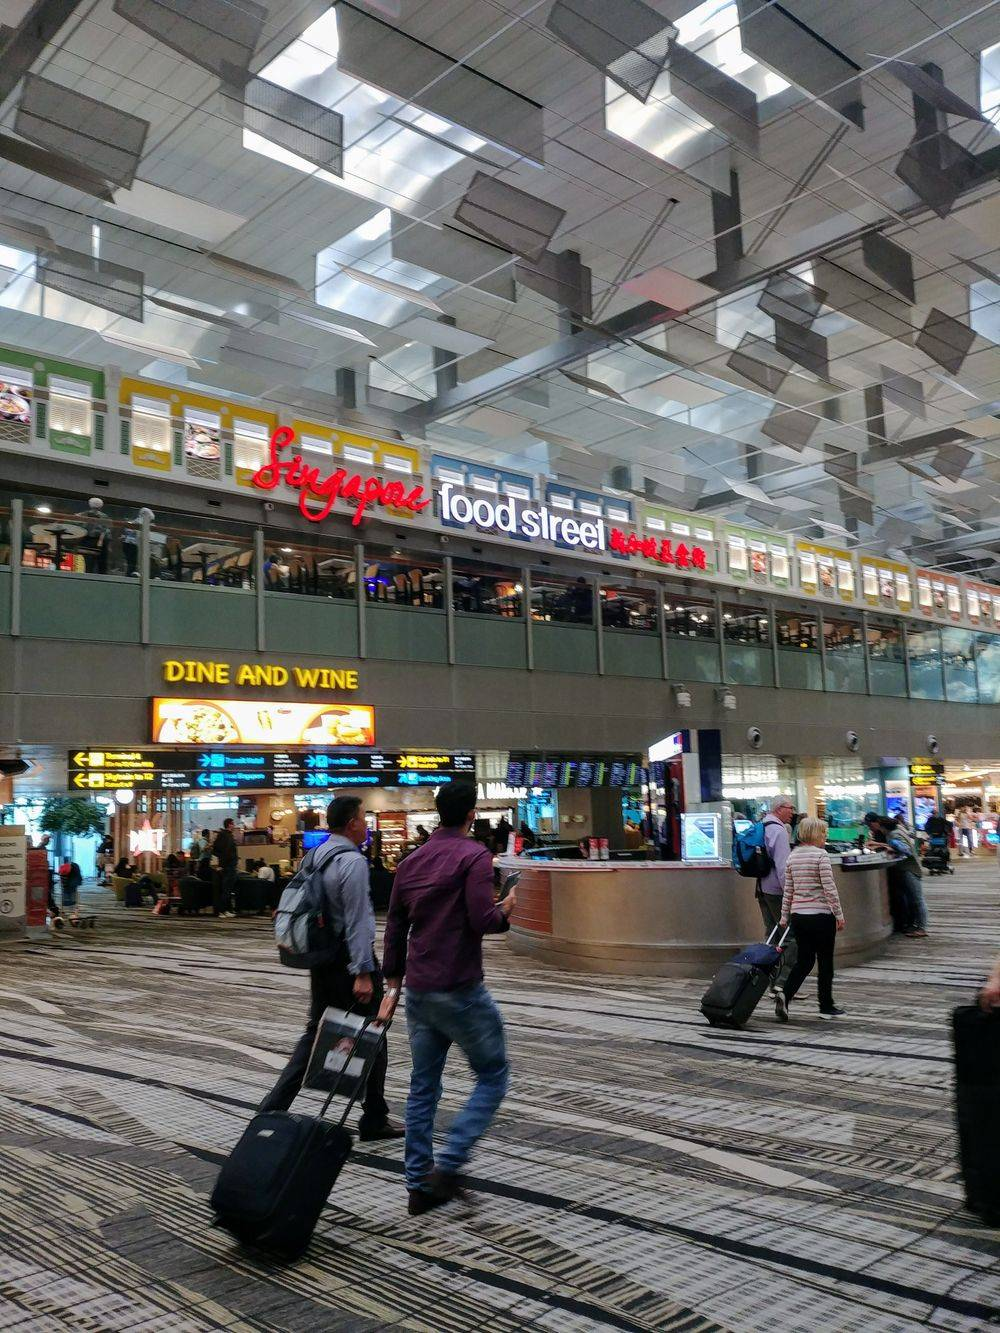 singapore food street, wine and dine in singapore changi airport ,louis vuitton in singapore changi airport ,high-end duty free shopping in singapore changi airport ,duty free shopping in singapore changi airport ,british & far east traders, singapore airlines, singapore changi airport